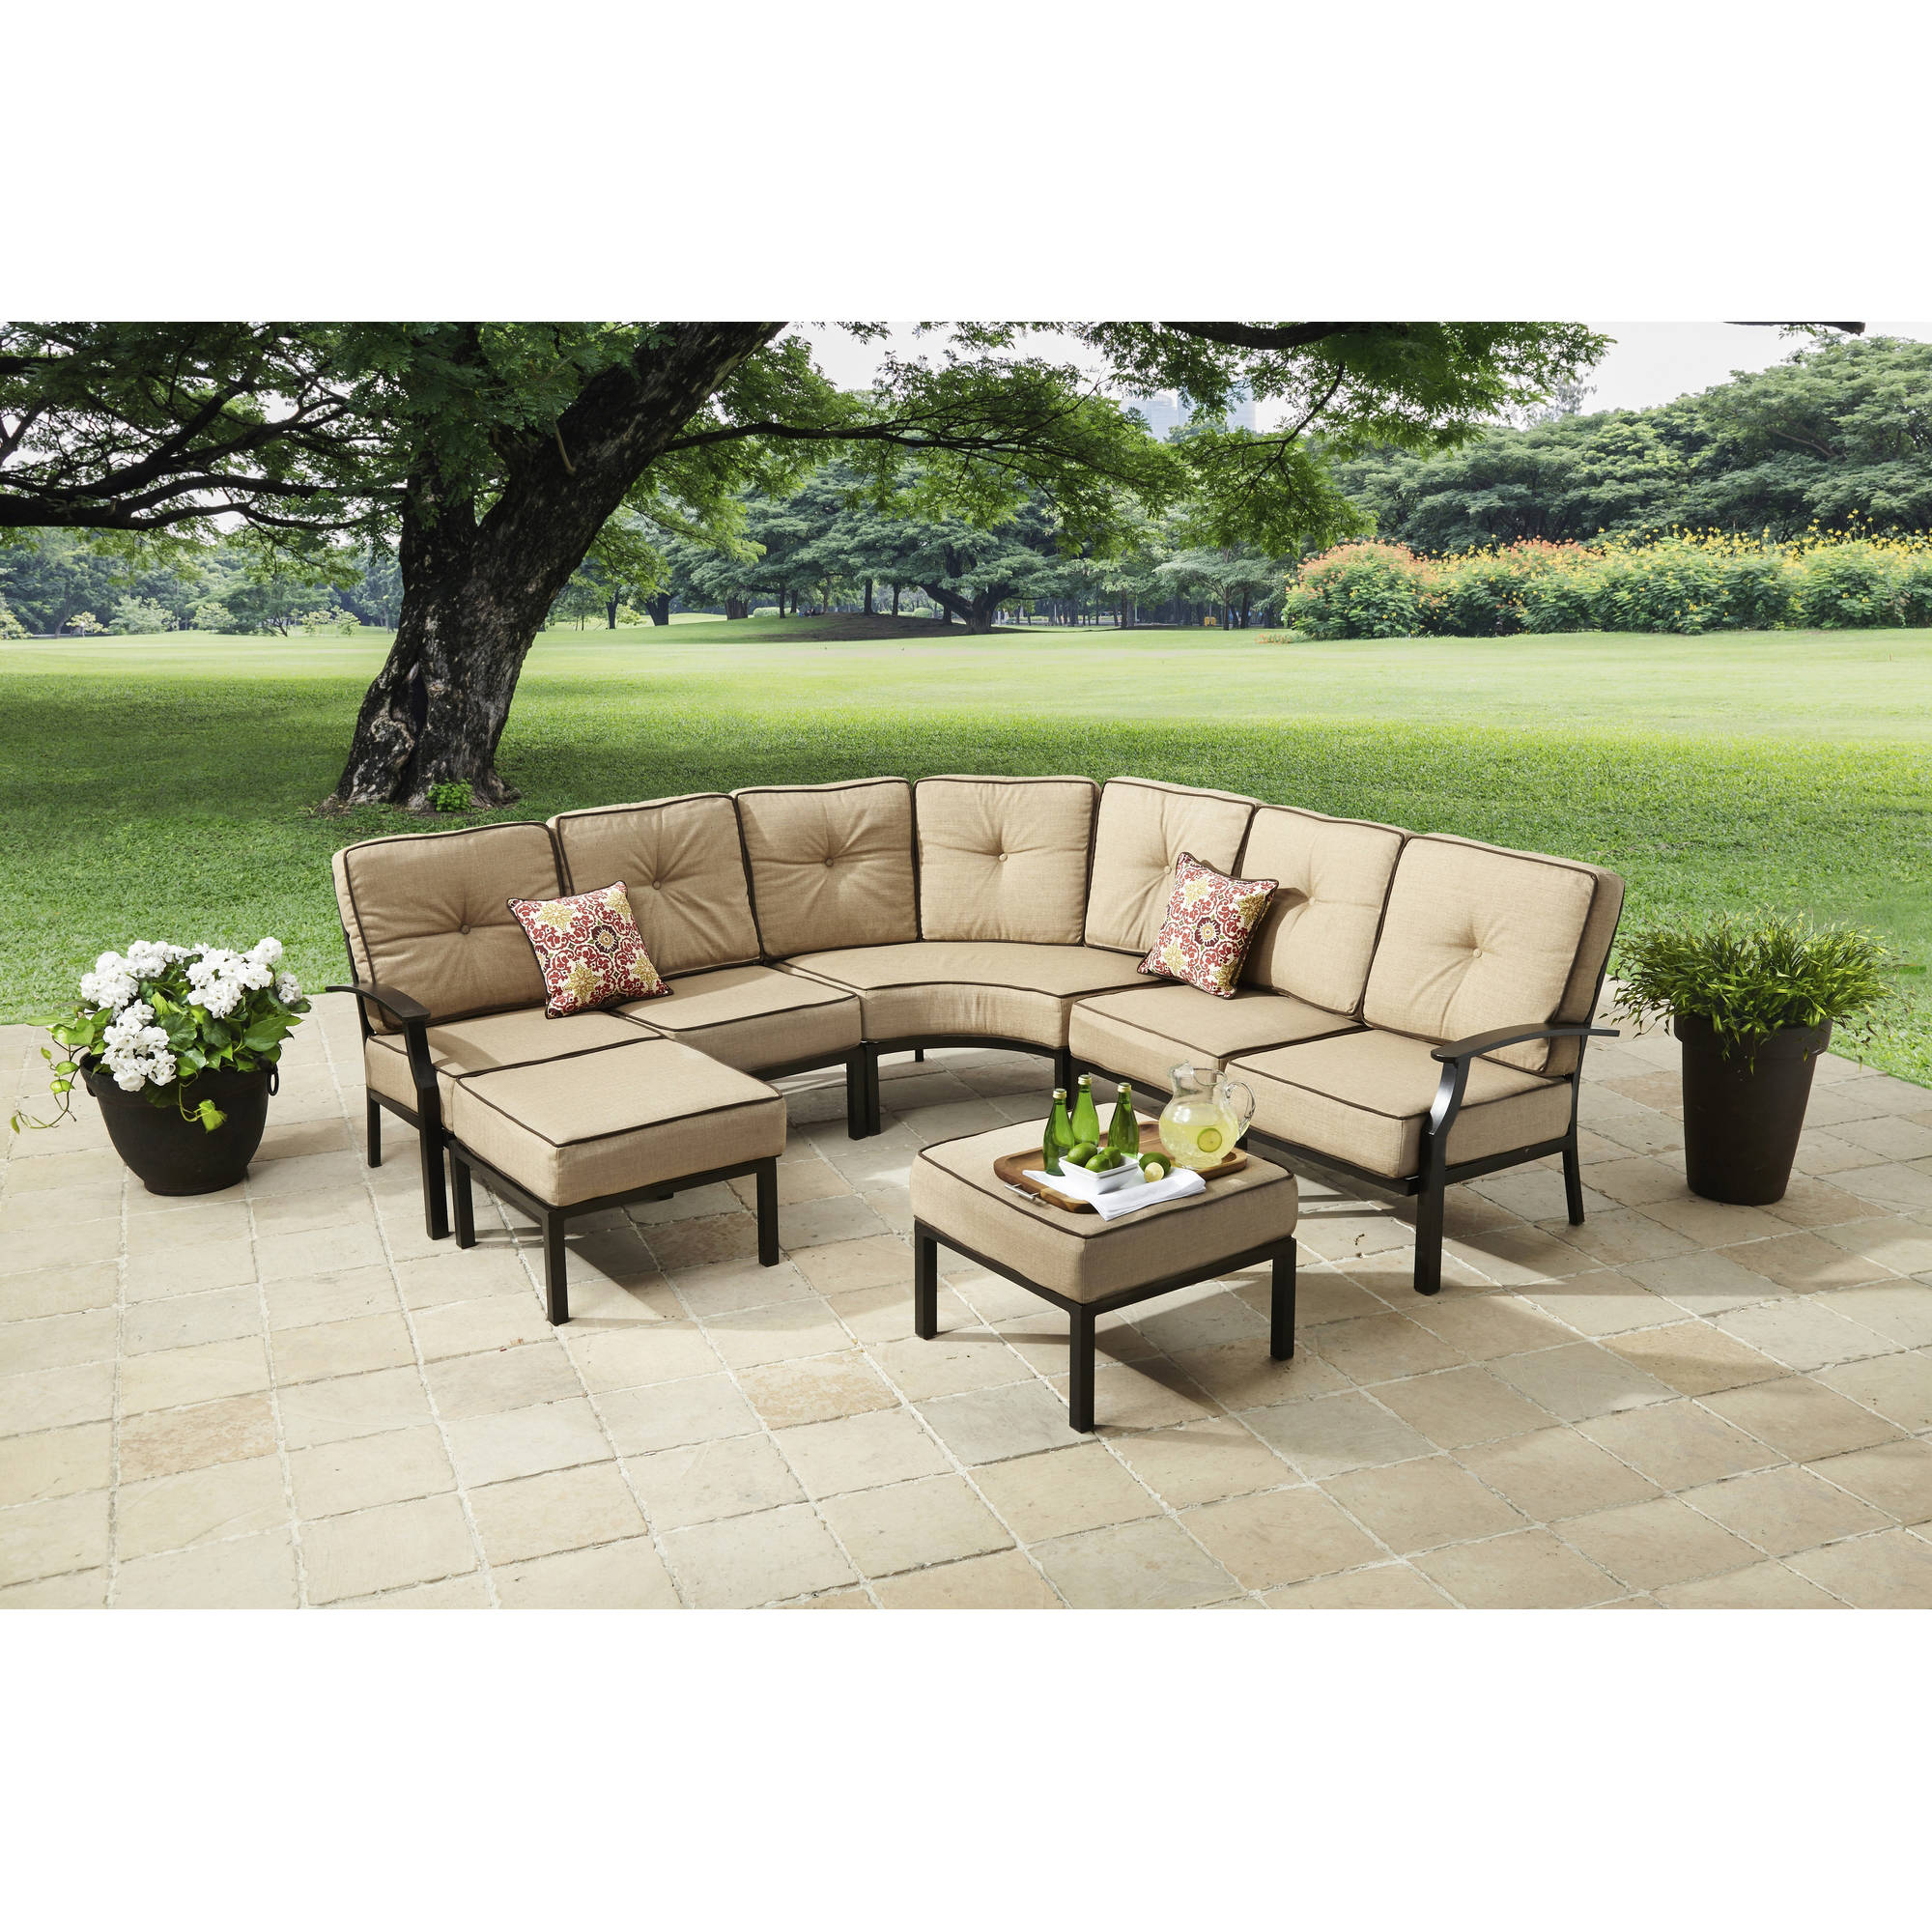 pdp sectional with outdoor cushions patio furniture lane reviews birch brookhaven